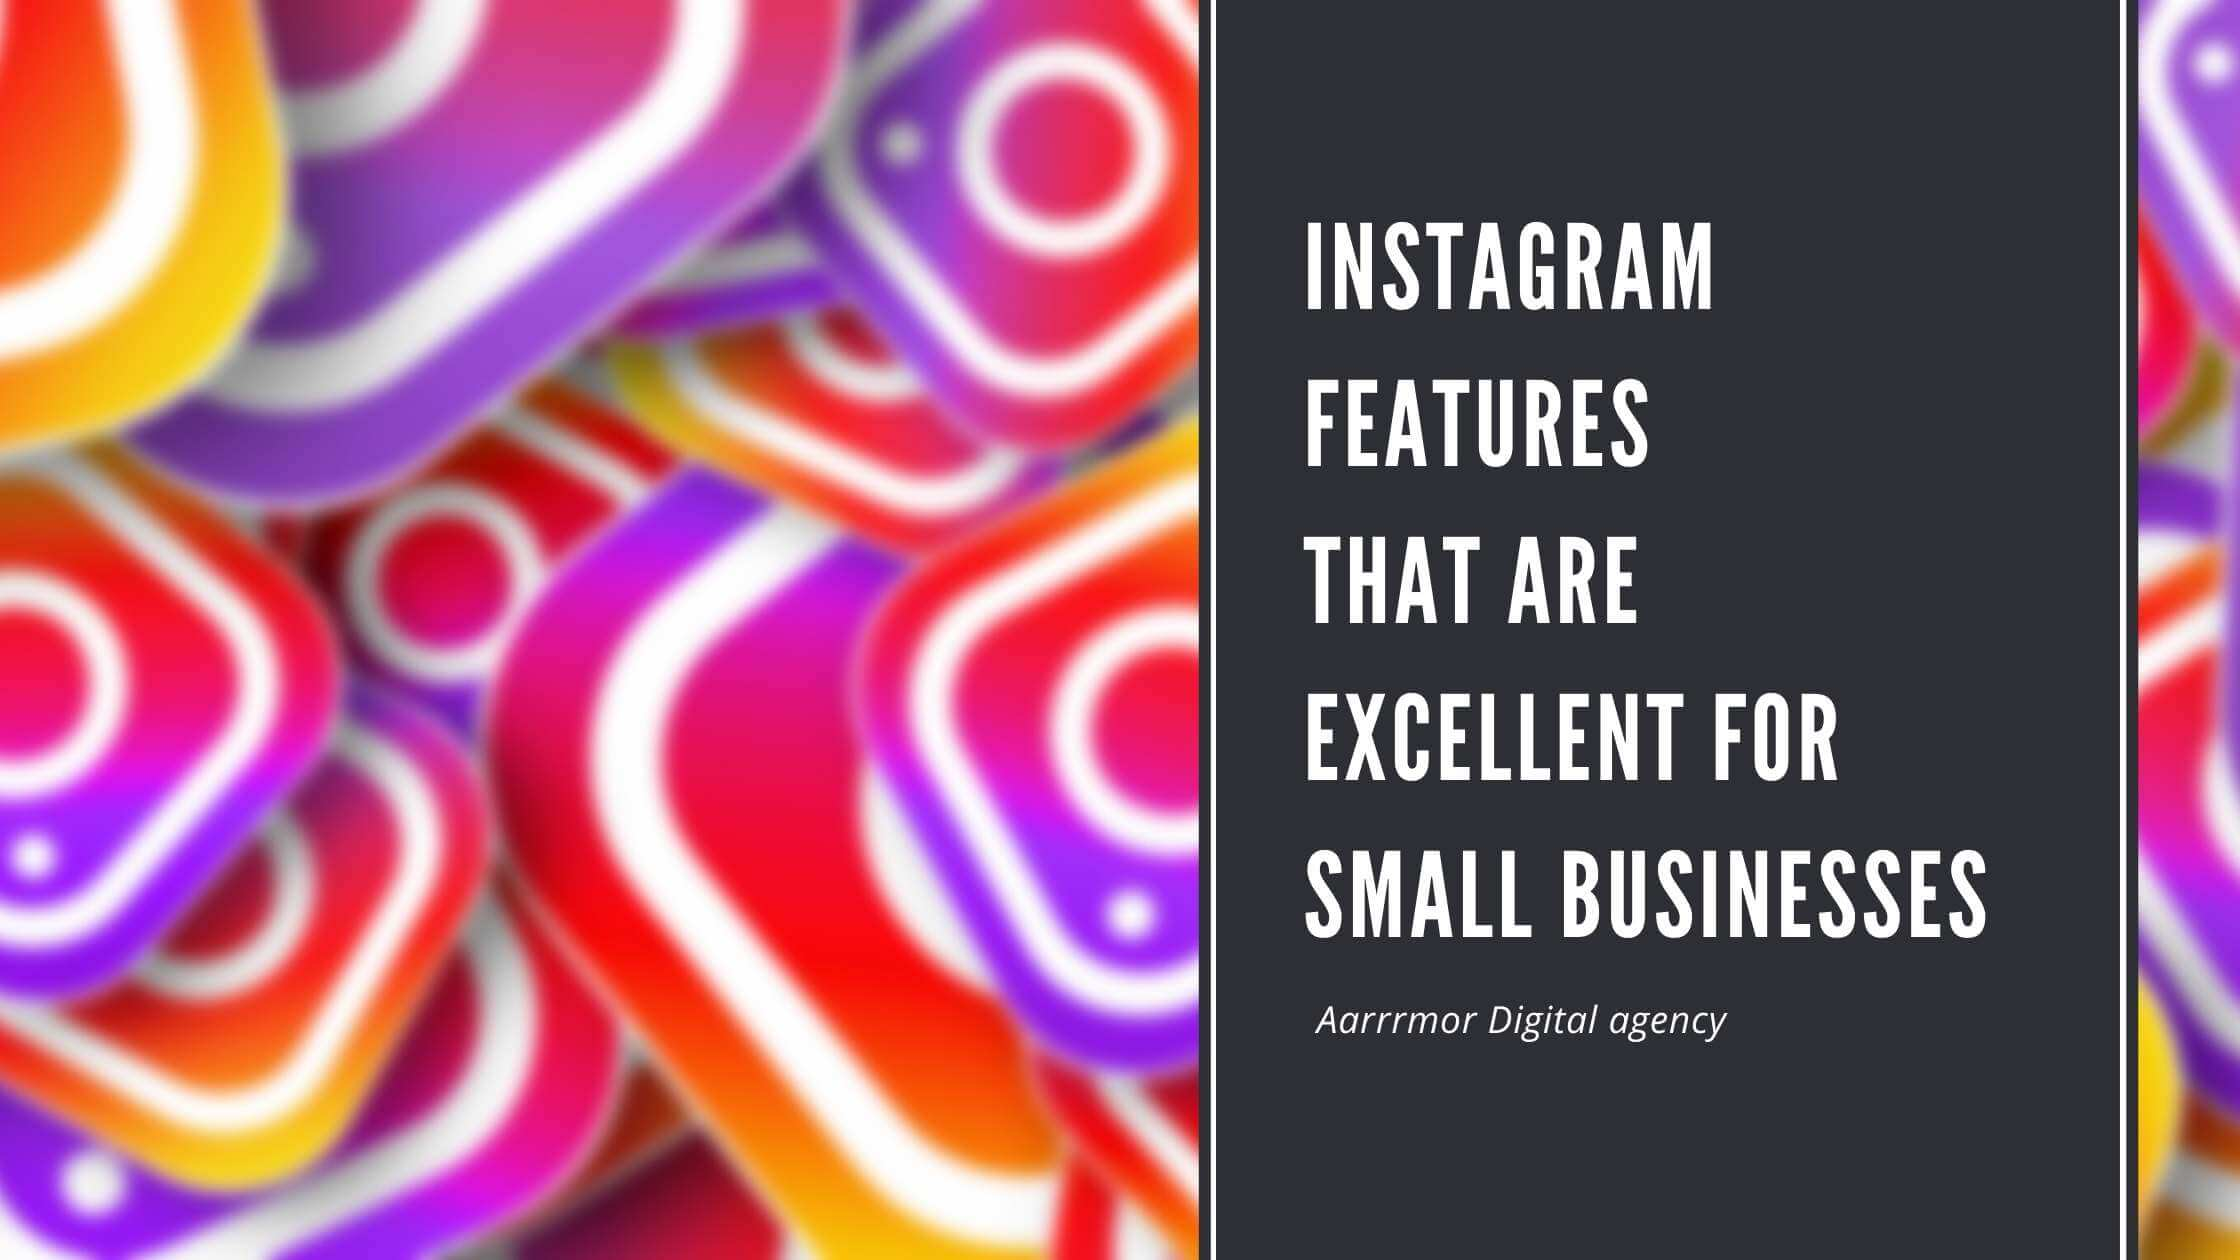 5 Instagram Features That Are Excellent For Small Businesses